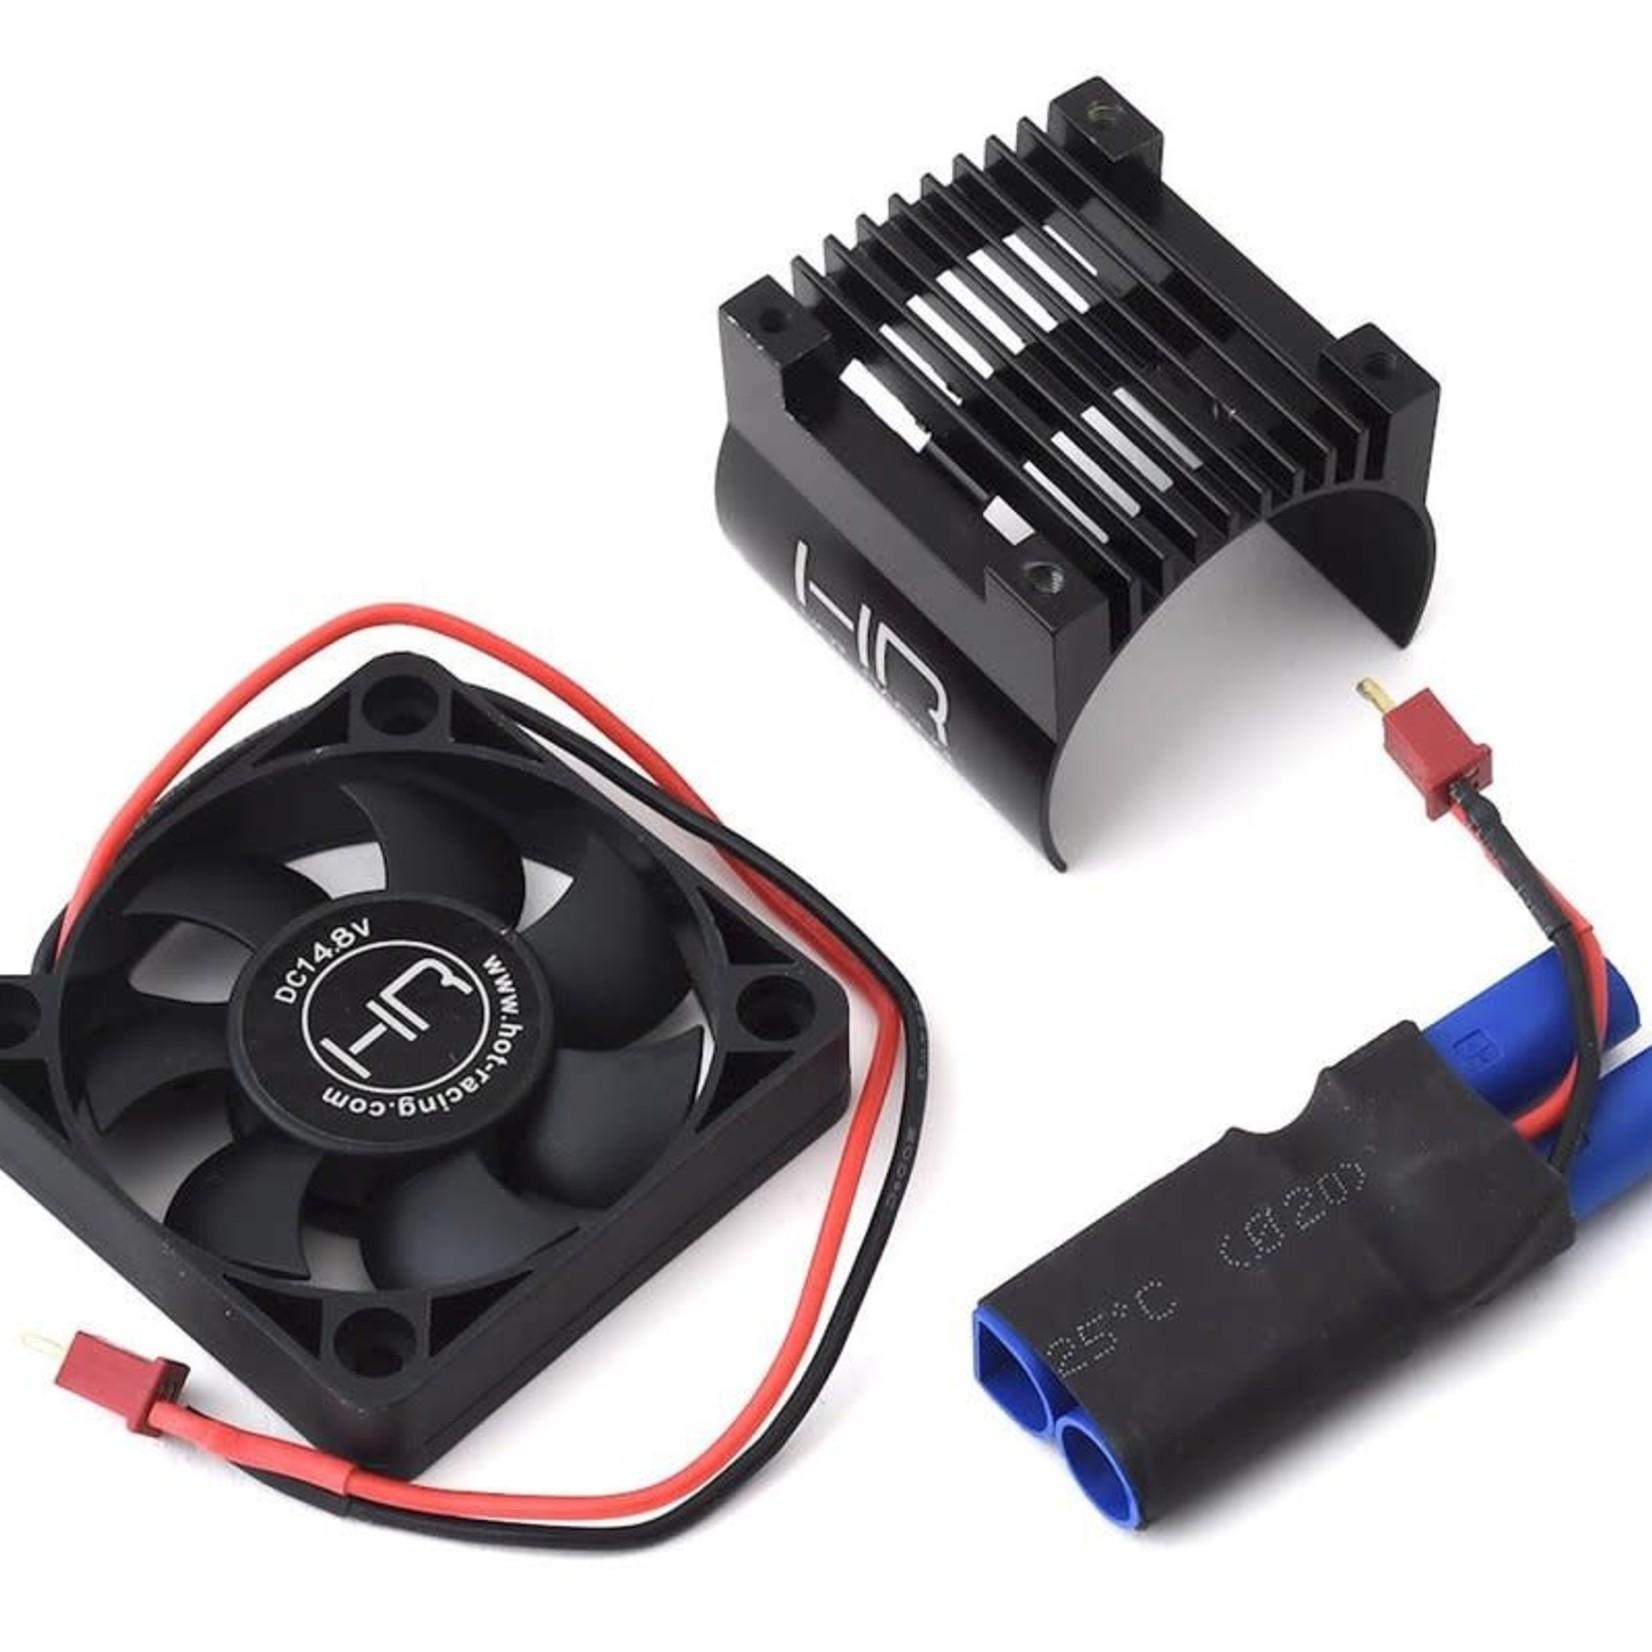 Hot Racing HRAAON505F02 Hot Racing Arrma 6S 1/8 6 Cell Monster Blower Motor Cooling Fan Kit